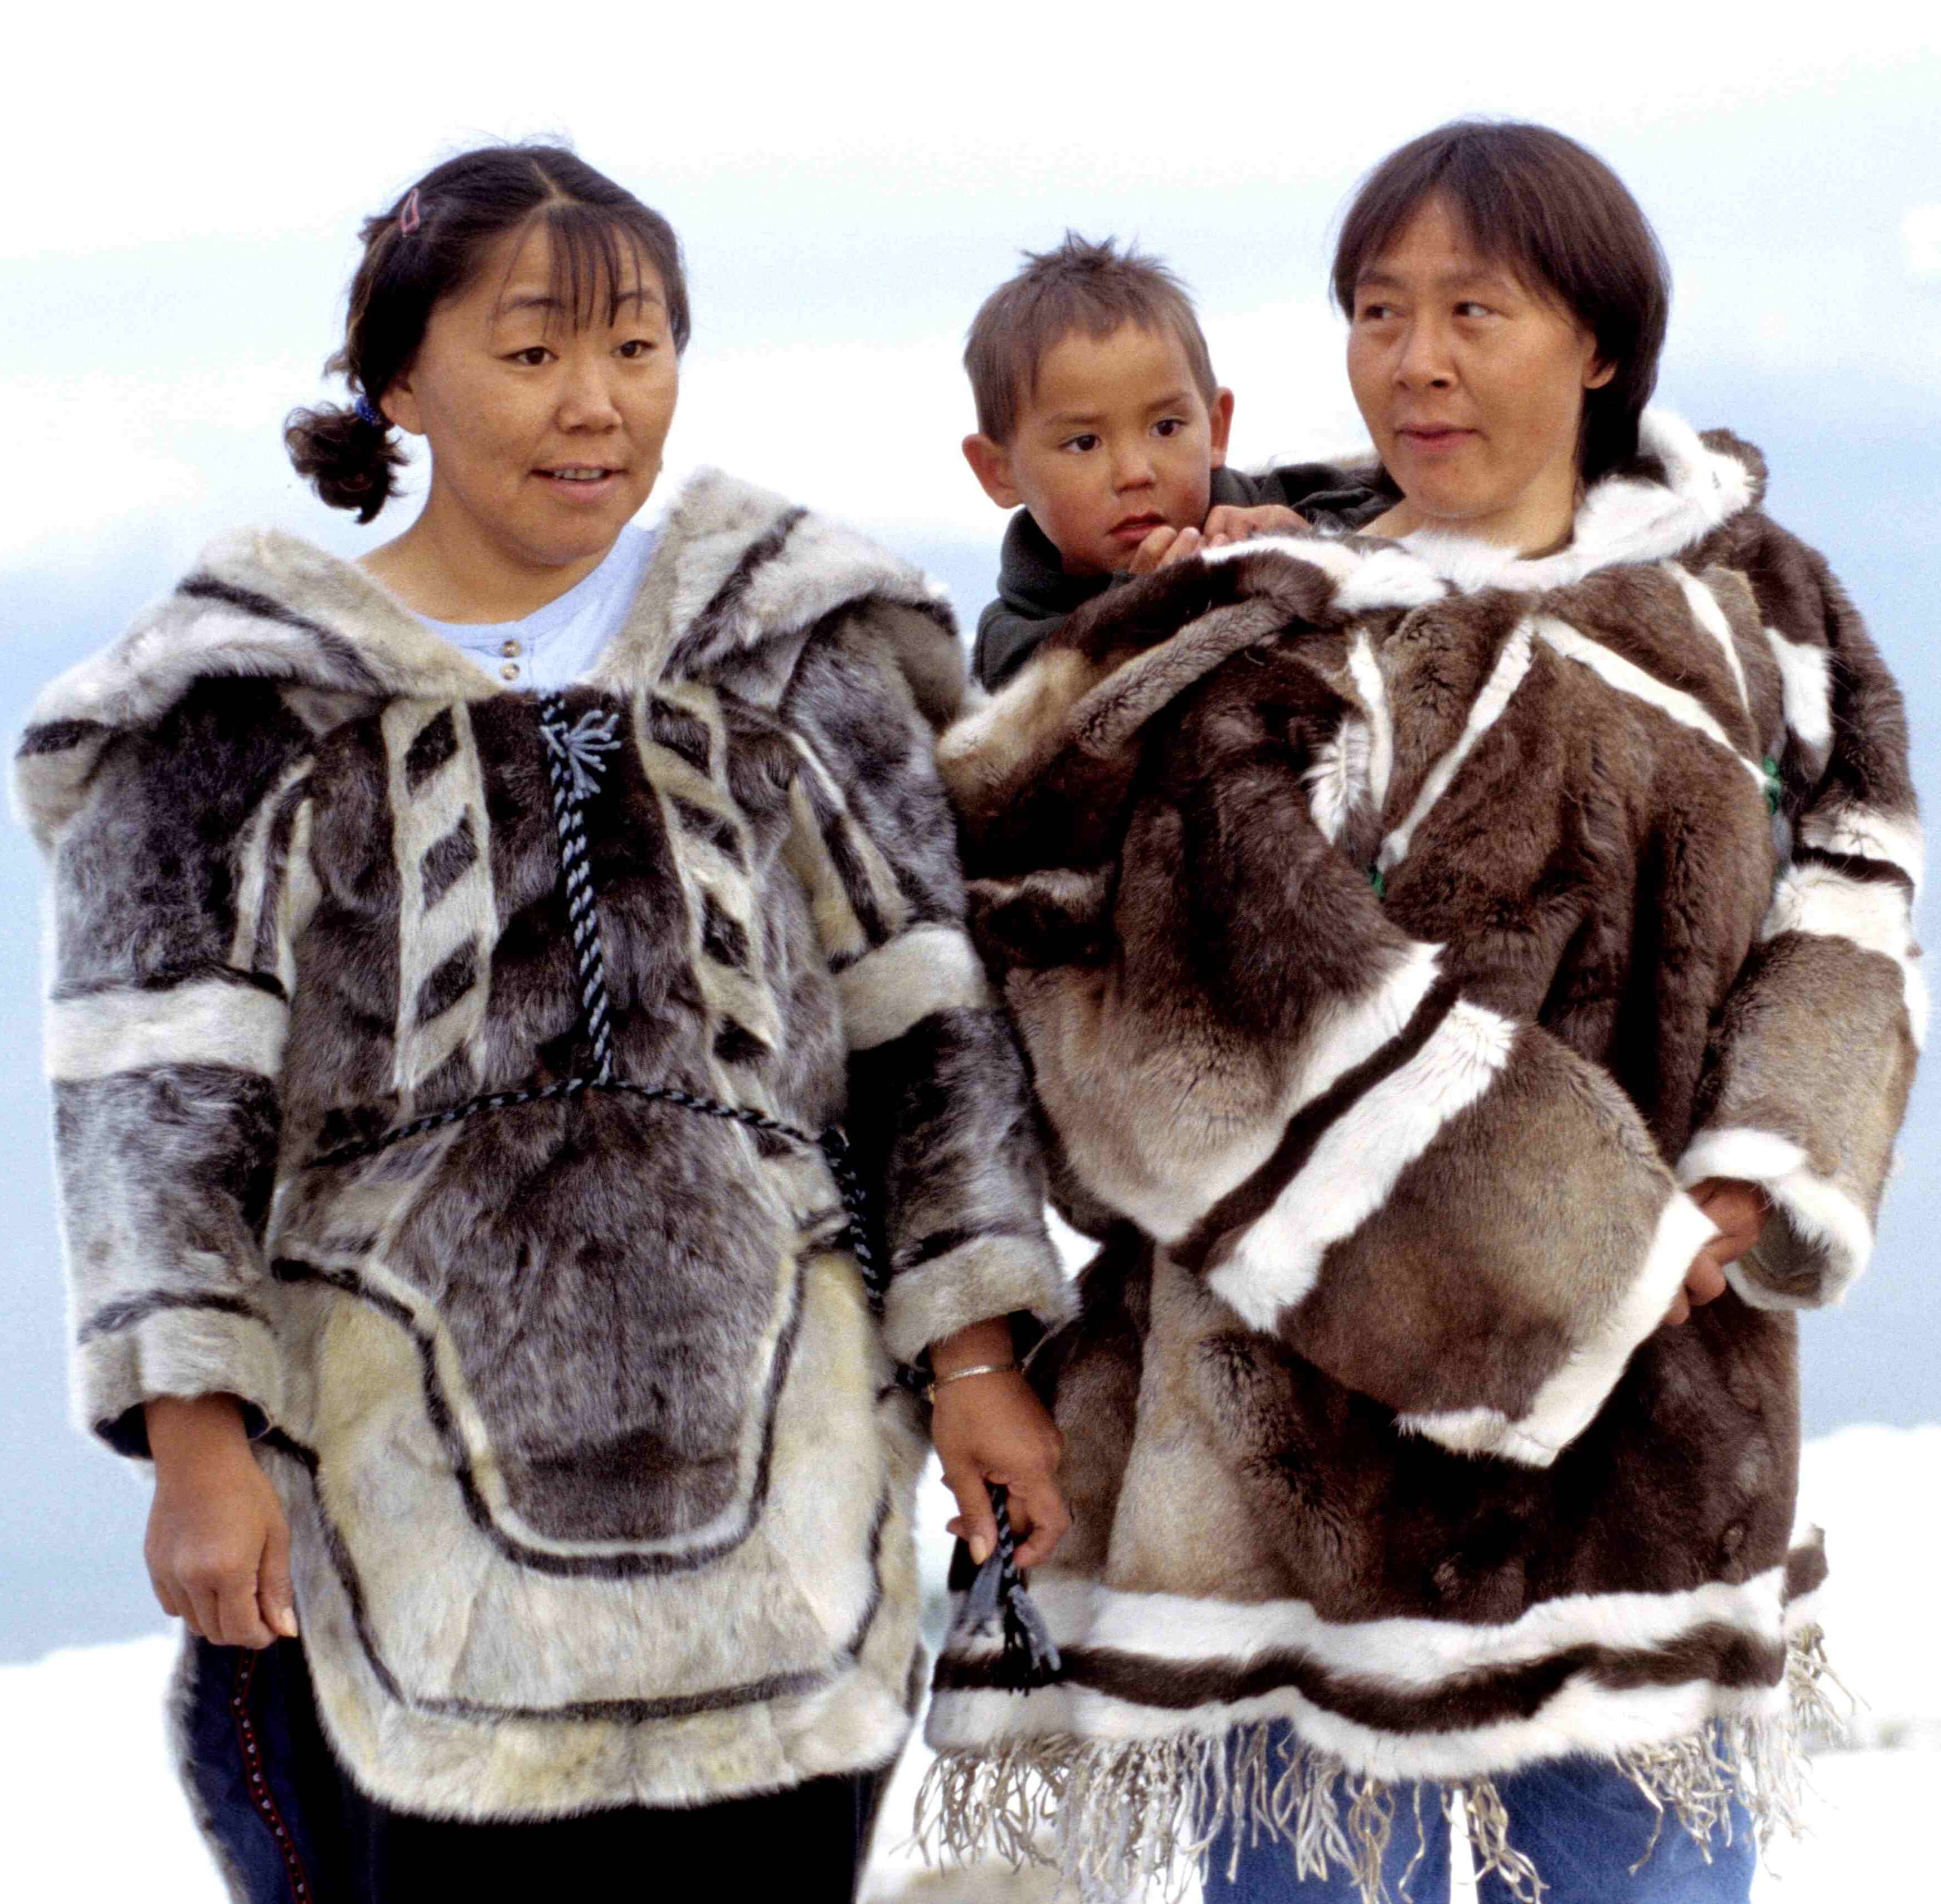 inuit newborns at serious risk during fasting due to arctic gene